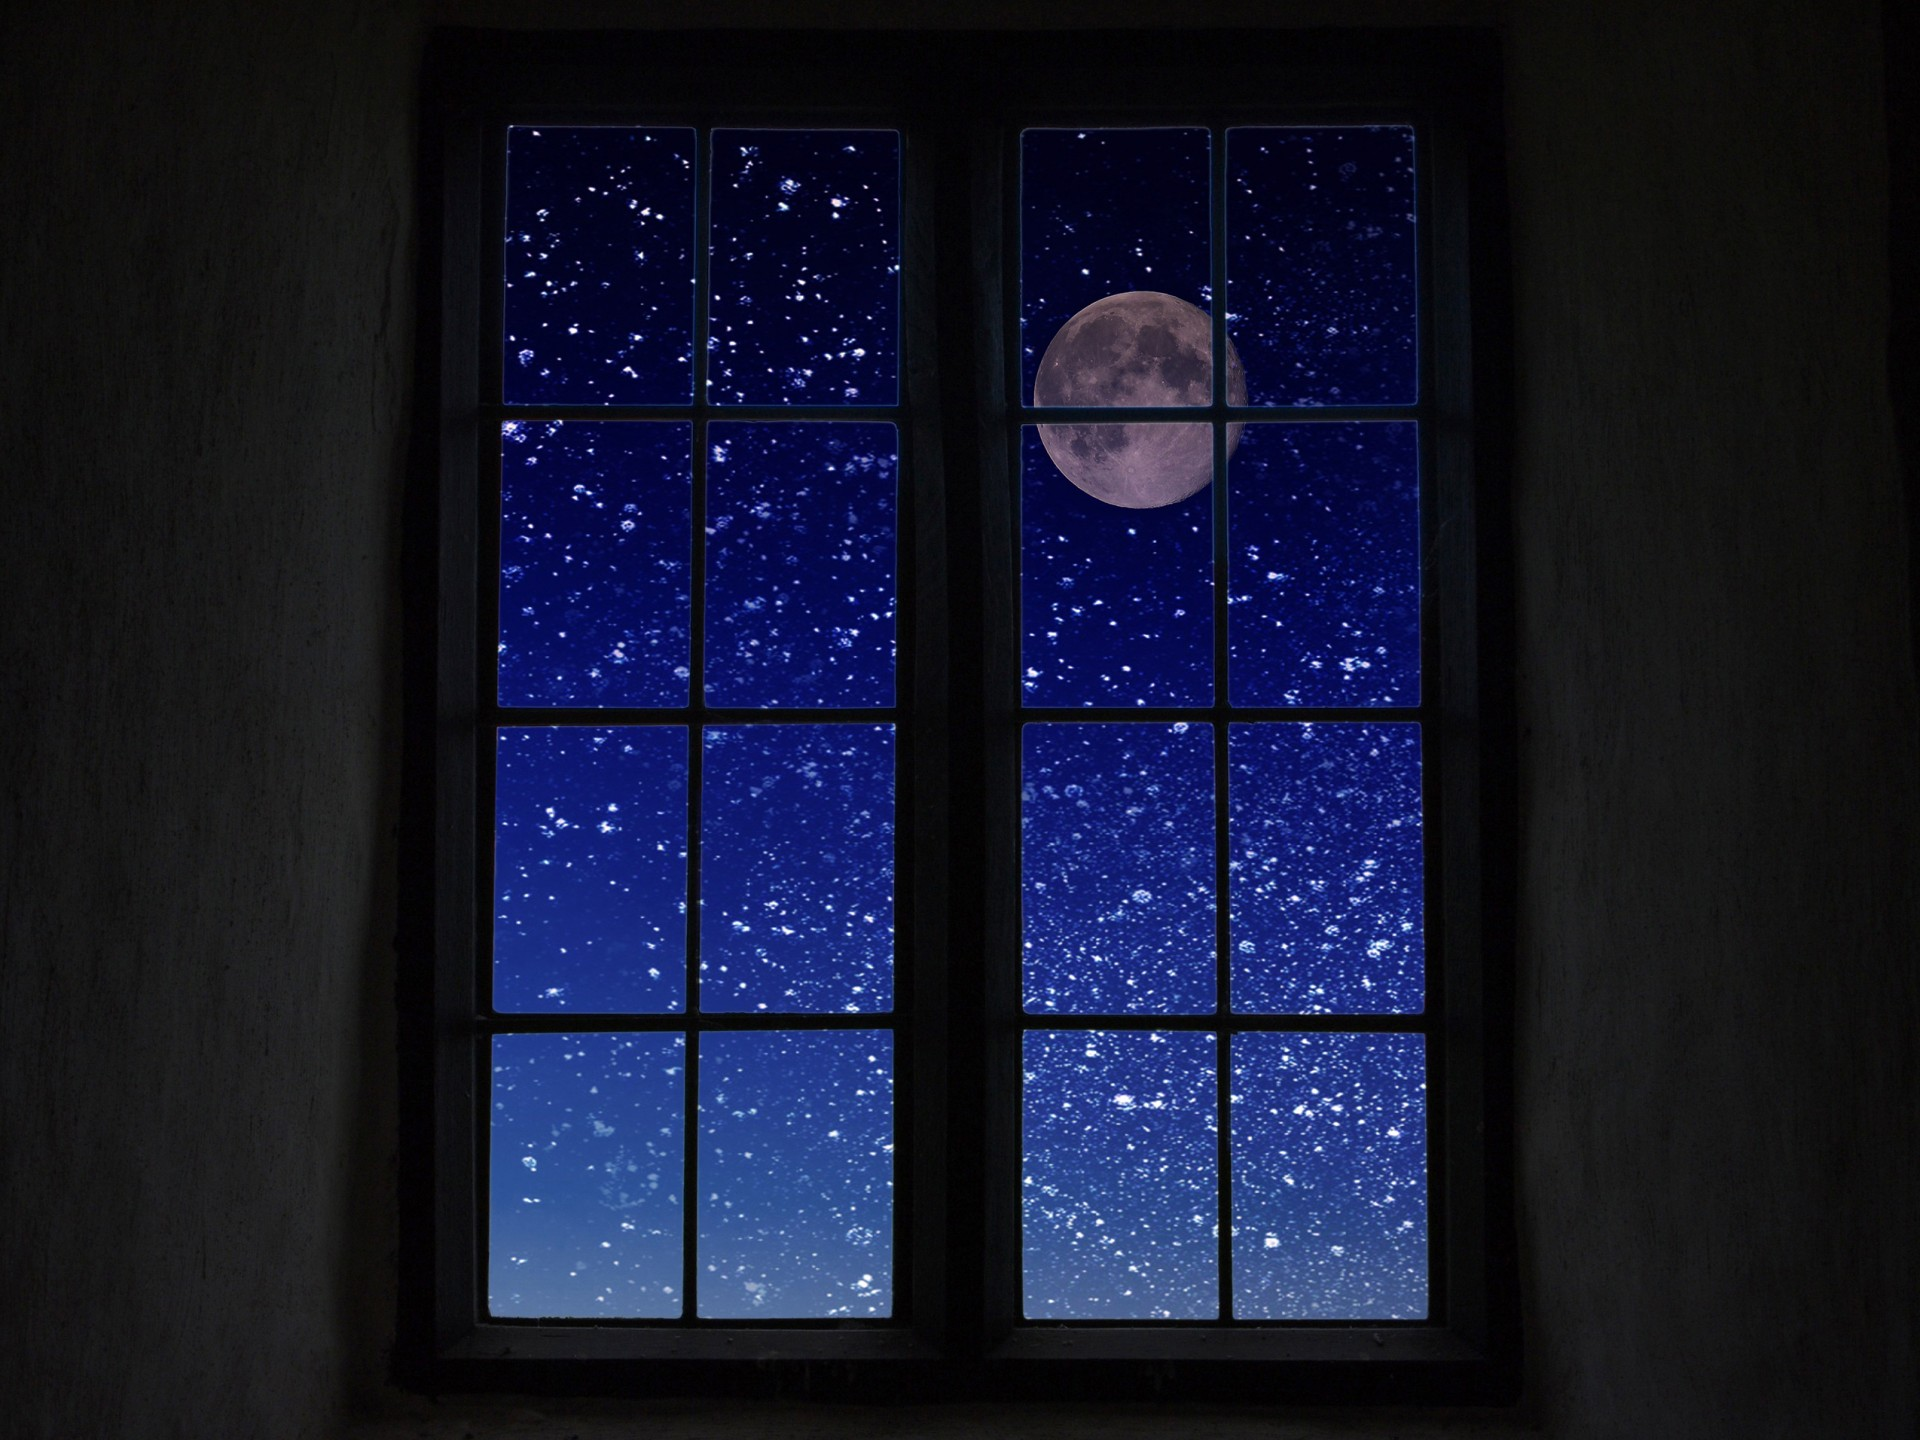 Window clipart moon Domain The Pictures Frame Window